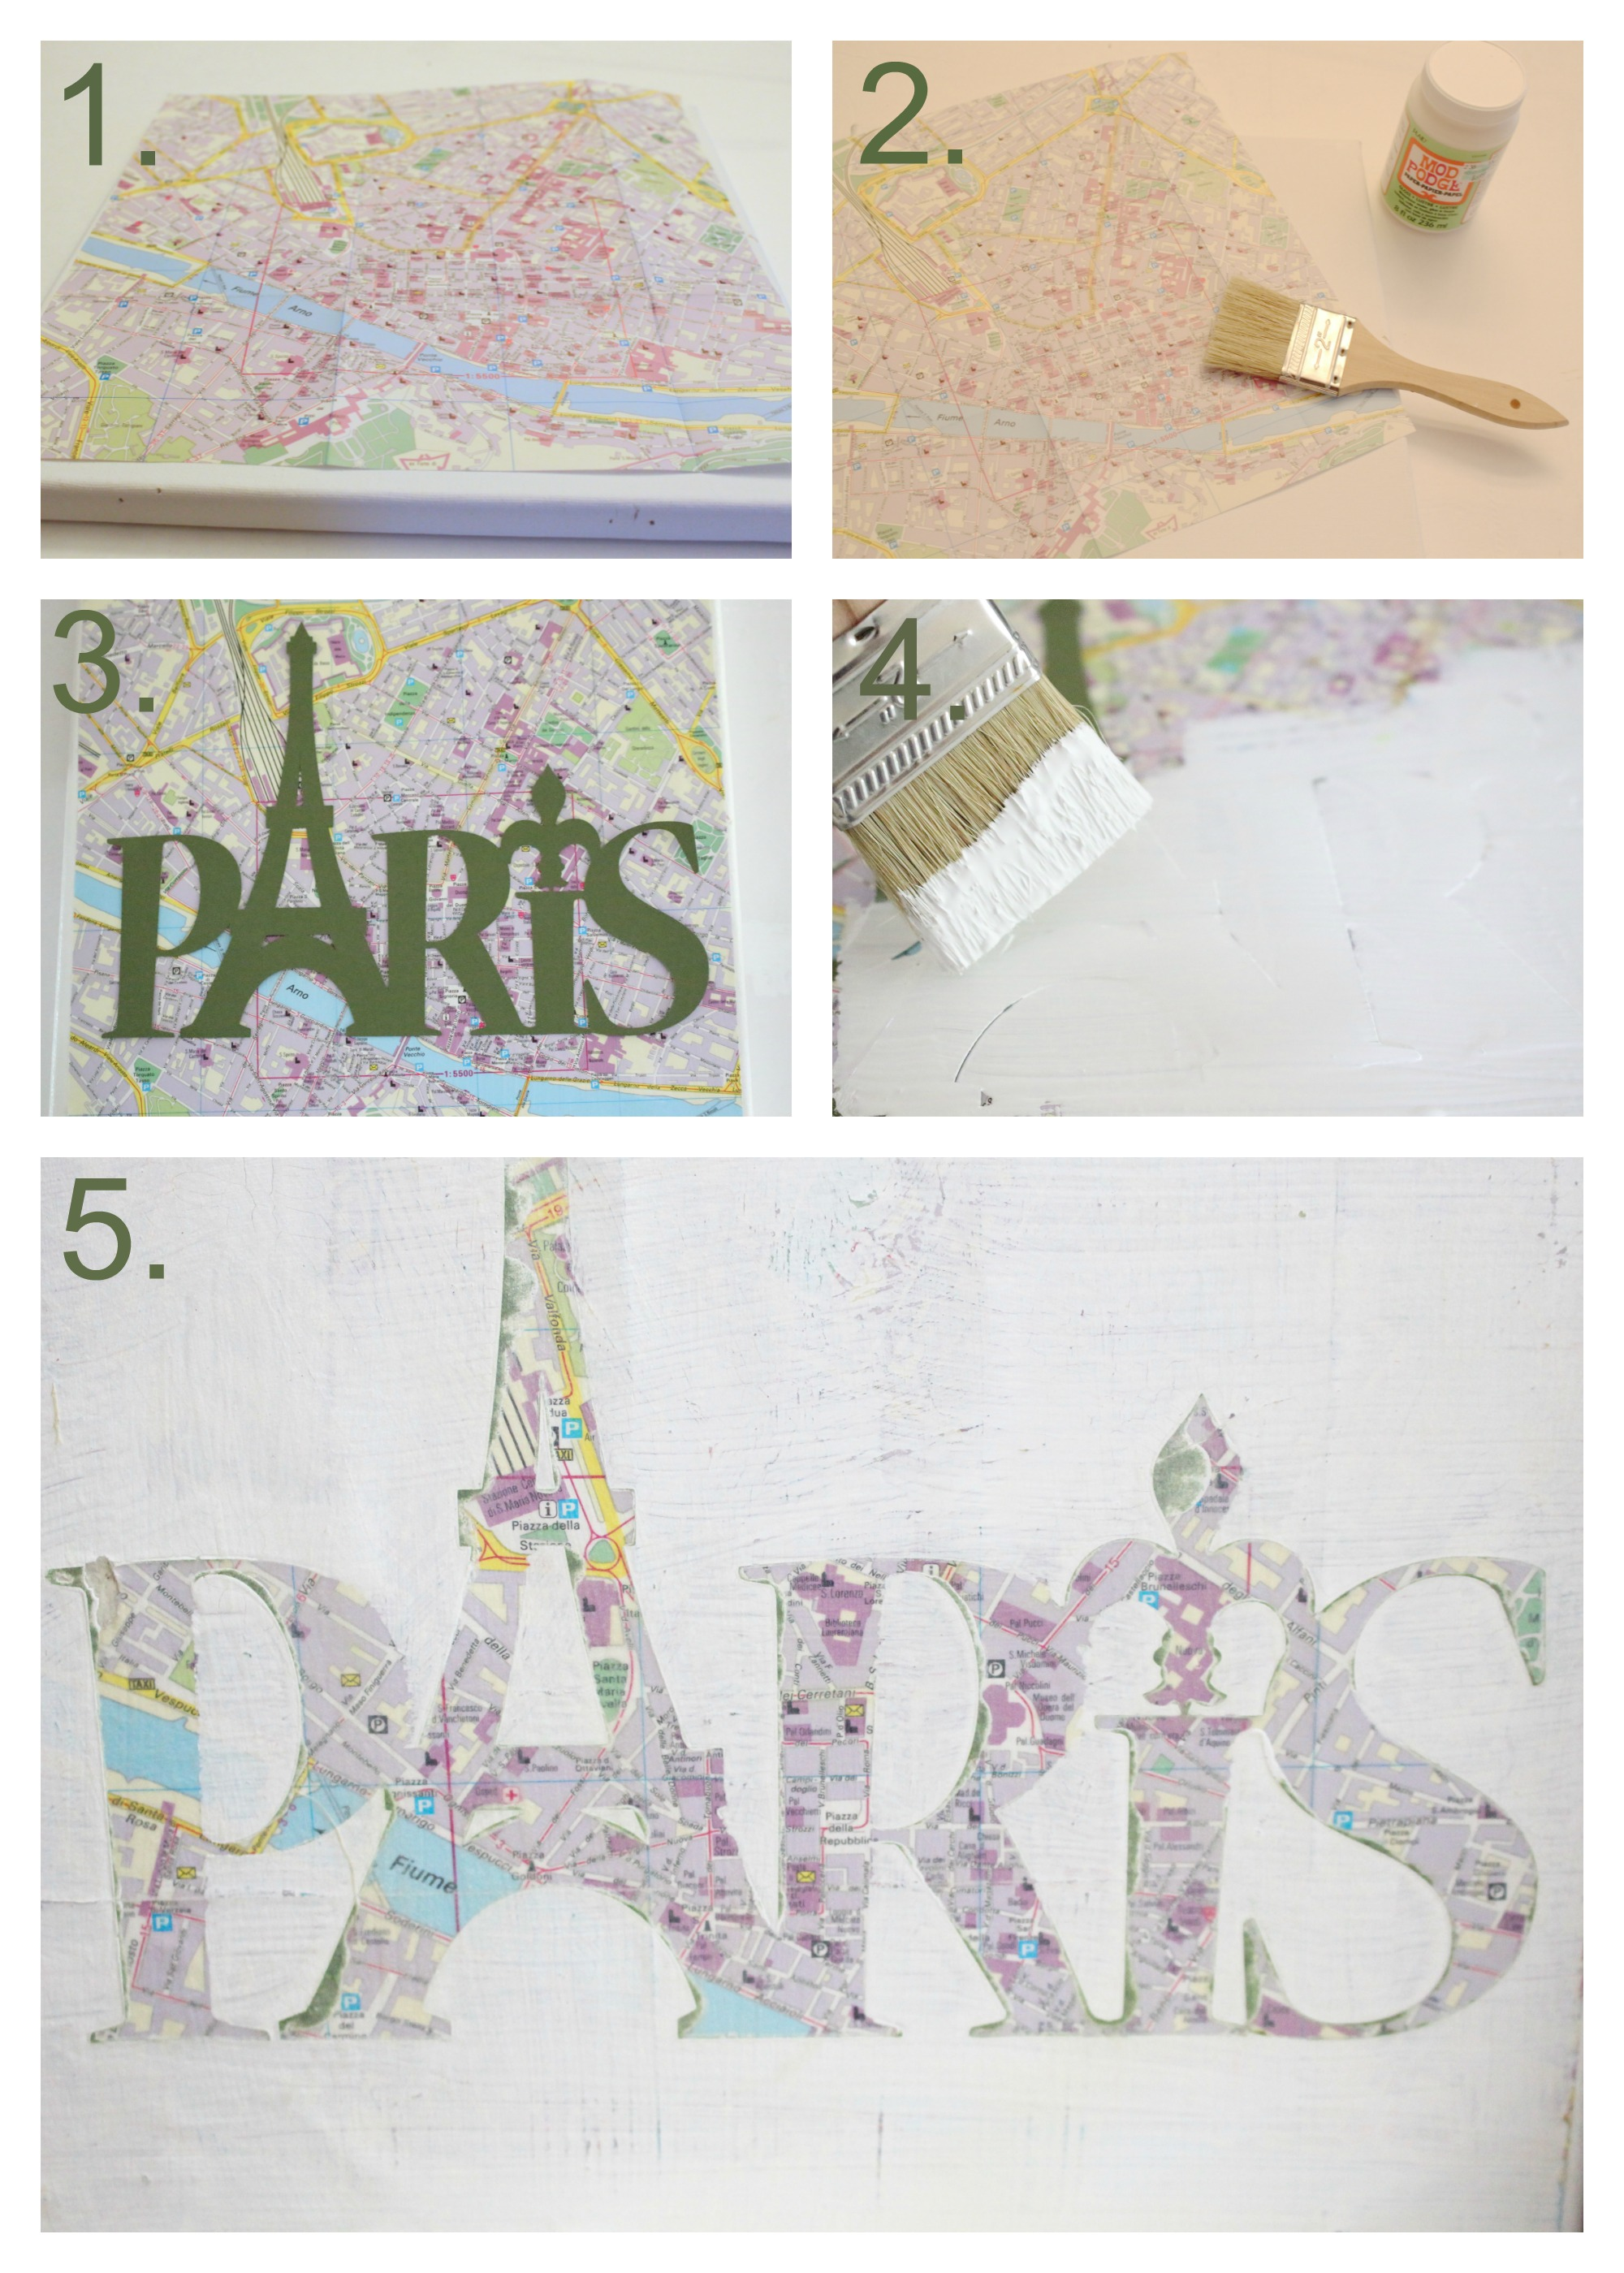 create-with-me-canvas-paris-project-step-by-step-instructions-to-making-a-map-canvas-mod-podge-project-painted-canvas-paris-art-project